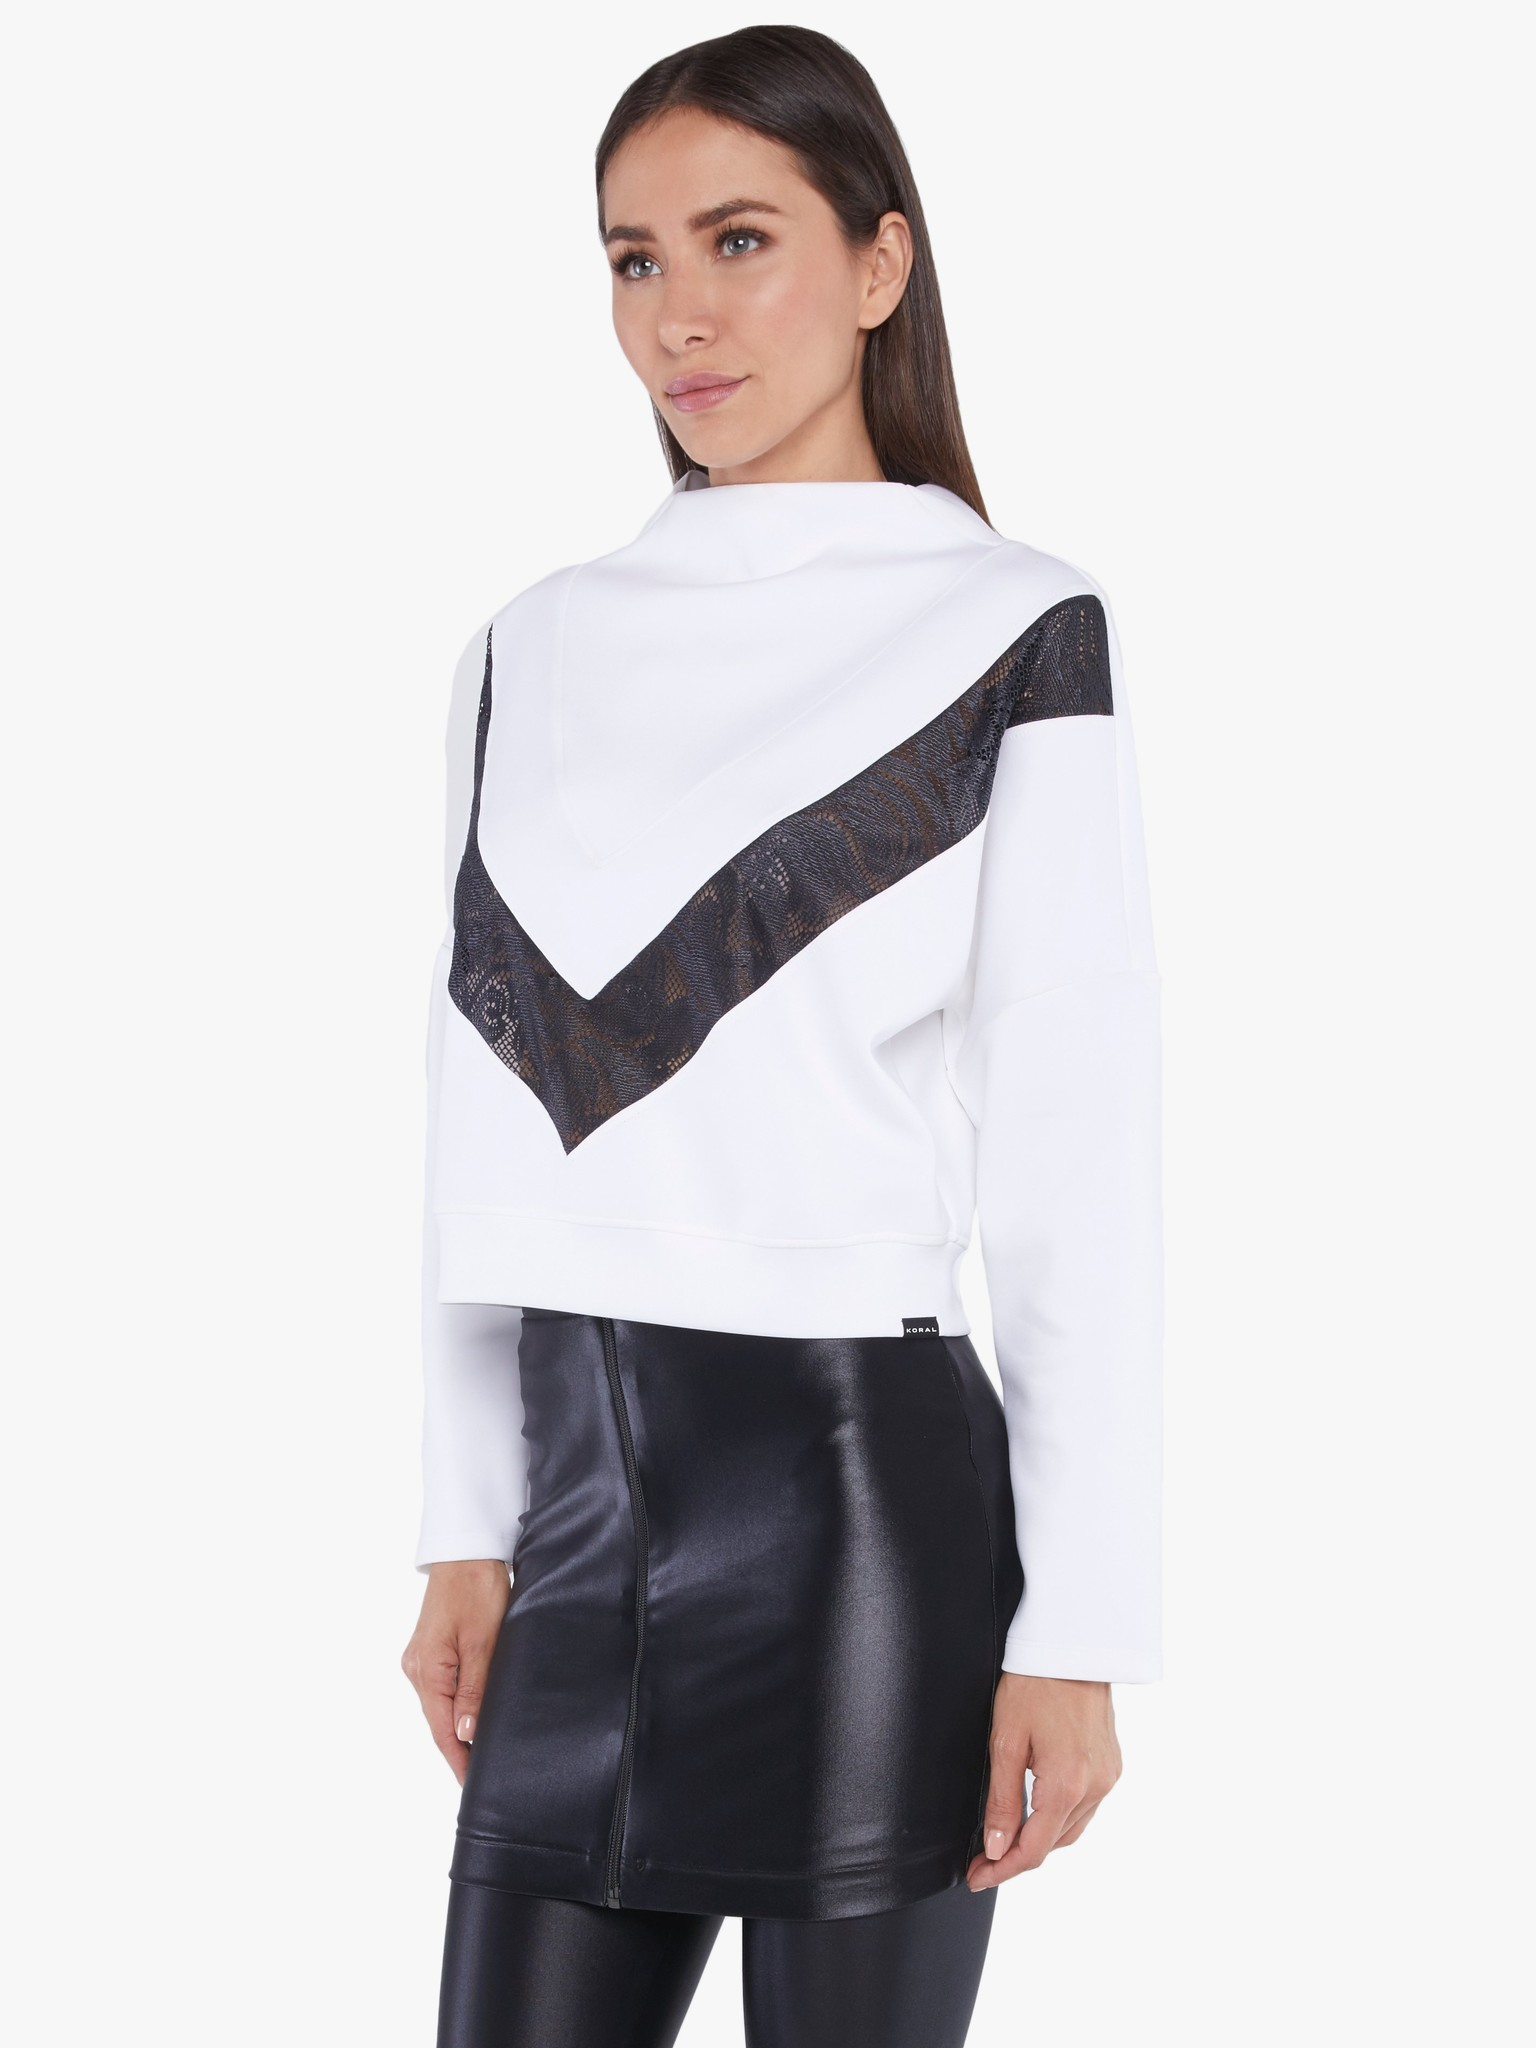 Koral Activewear Sigmatic Scuba Sweatshirt White Black